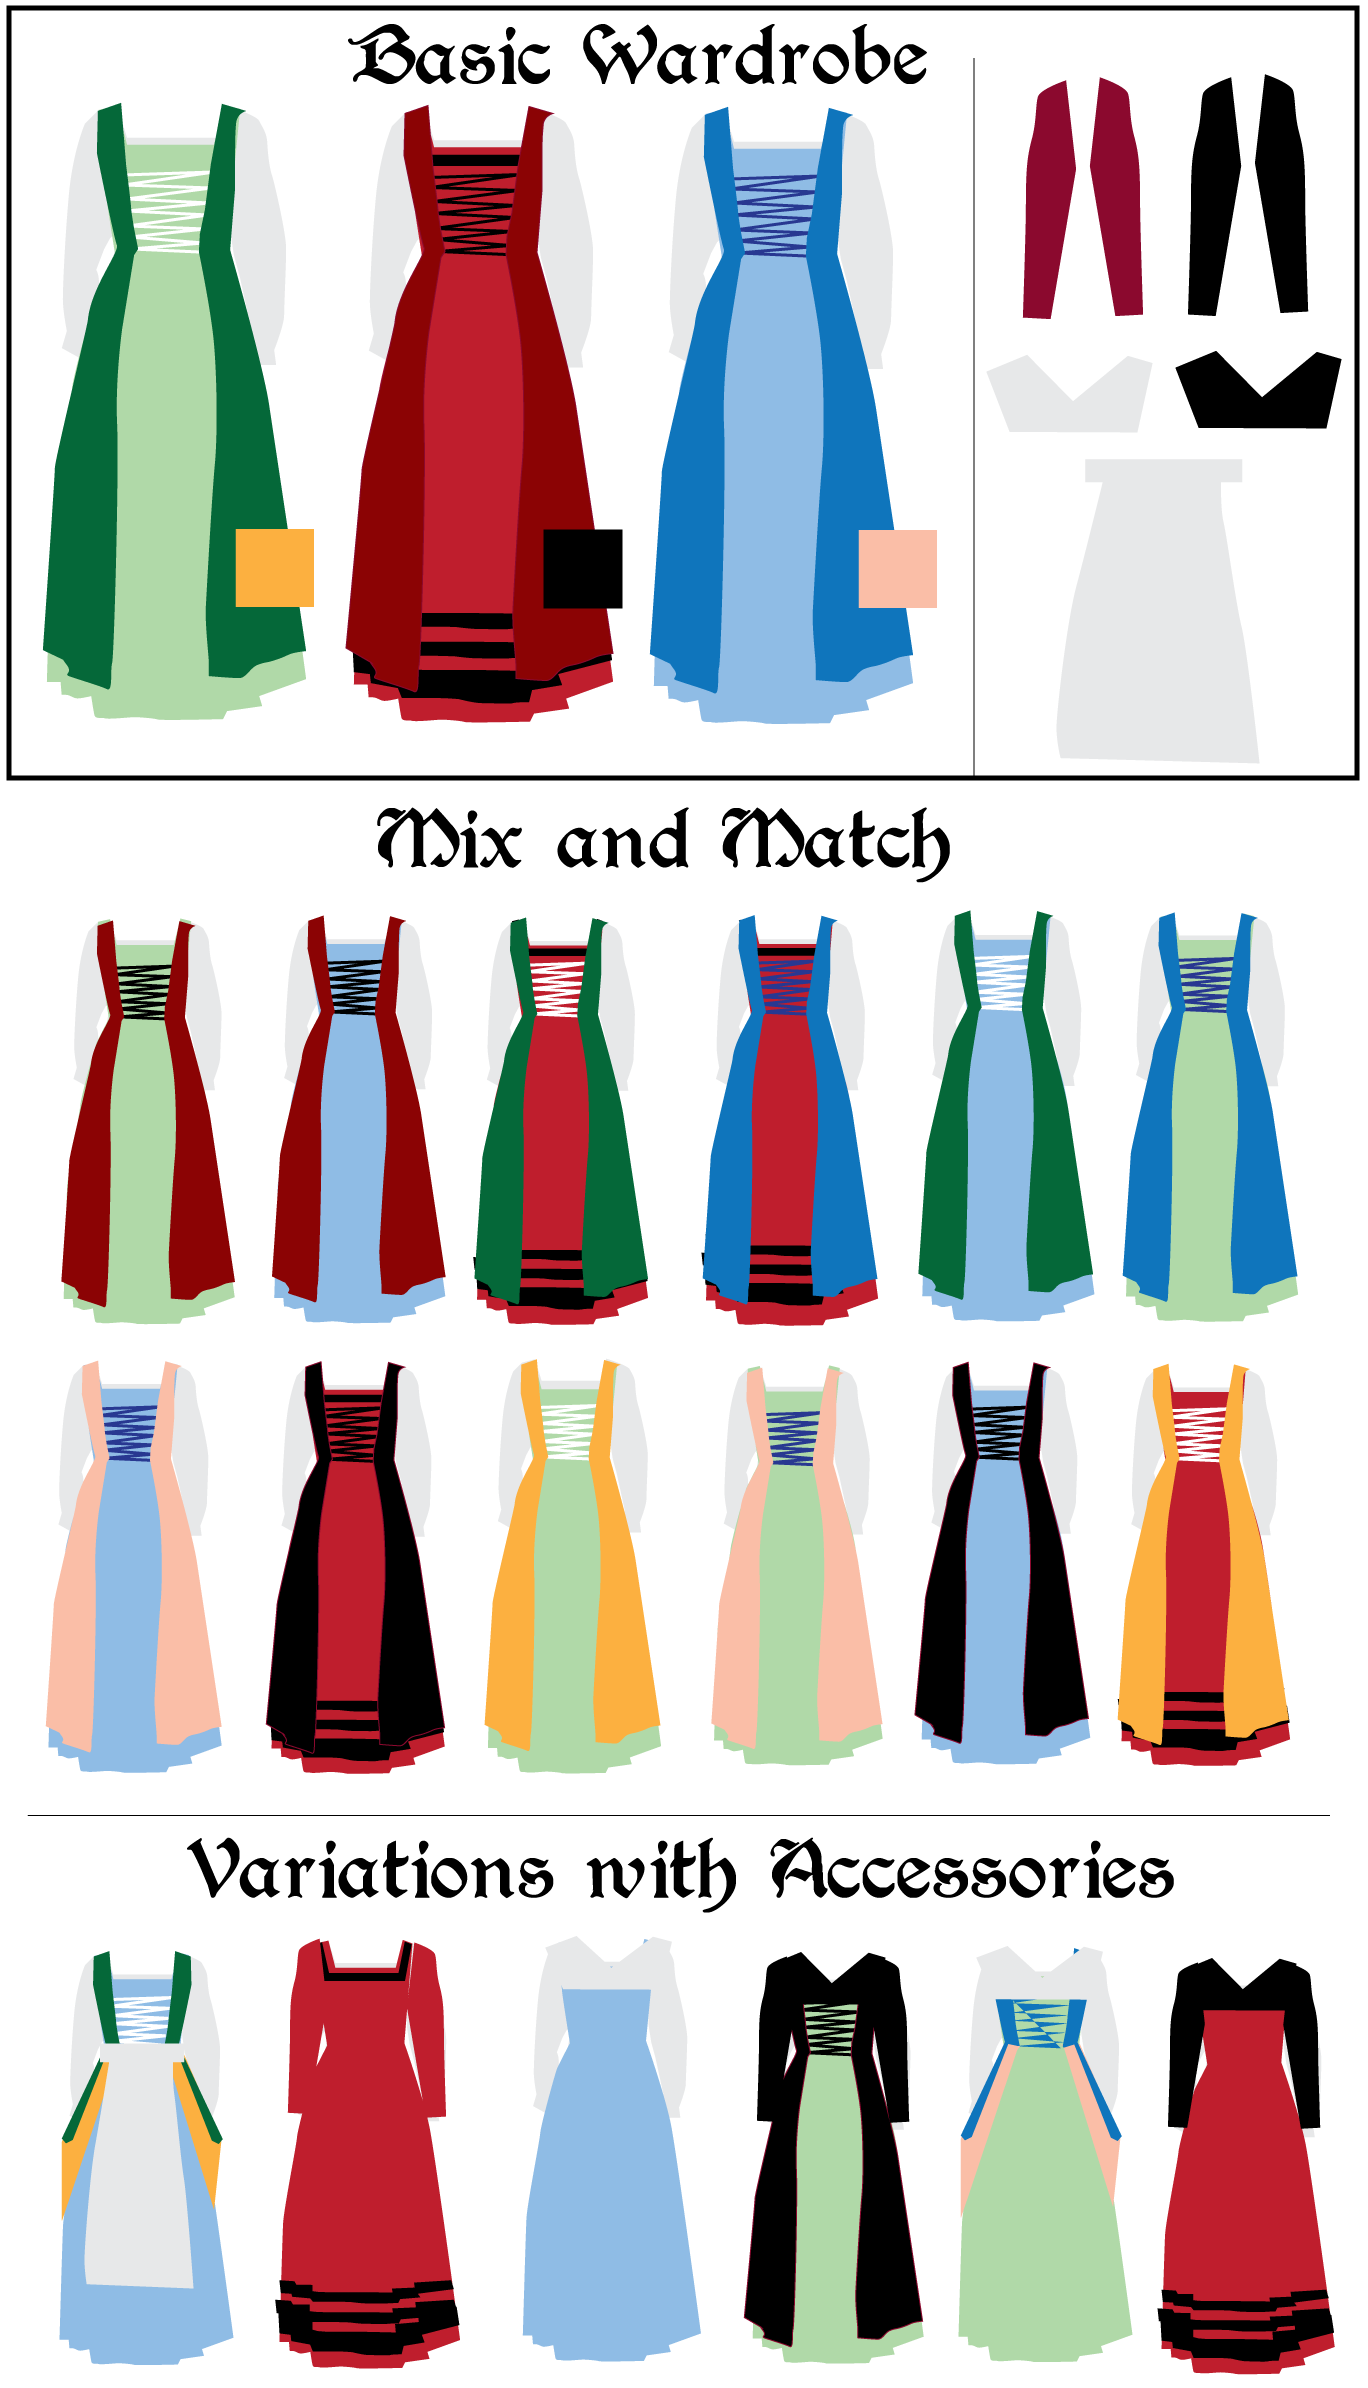 More thoughts on the. Mittens clipart dress